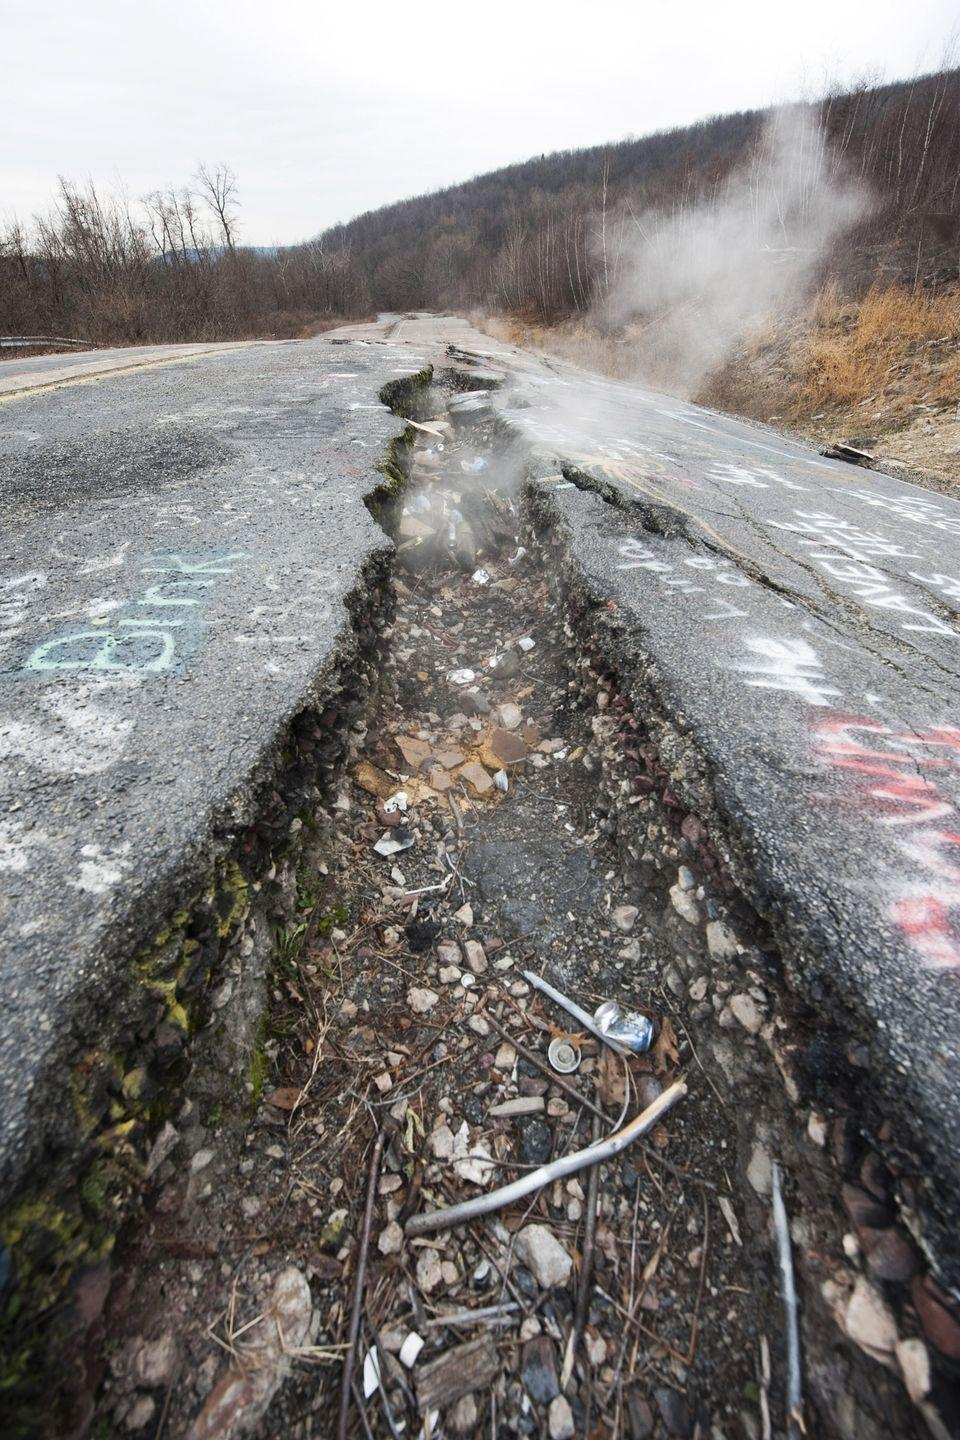 <p><strong>Population:</strong> 10</p><p>There's been an underground coal fire burning for more than 50 years, which has caused this huge hole in the main road in this small town.</p>